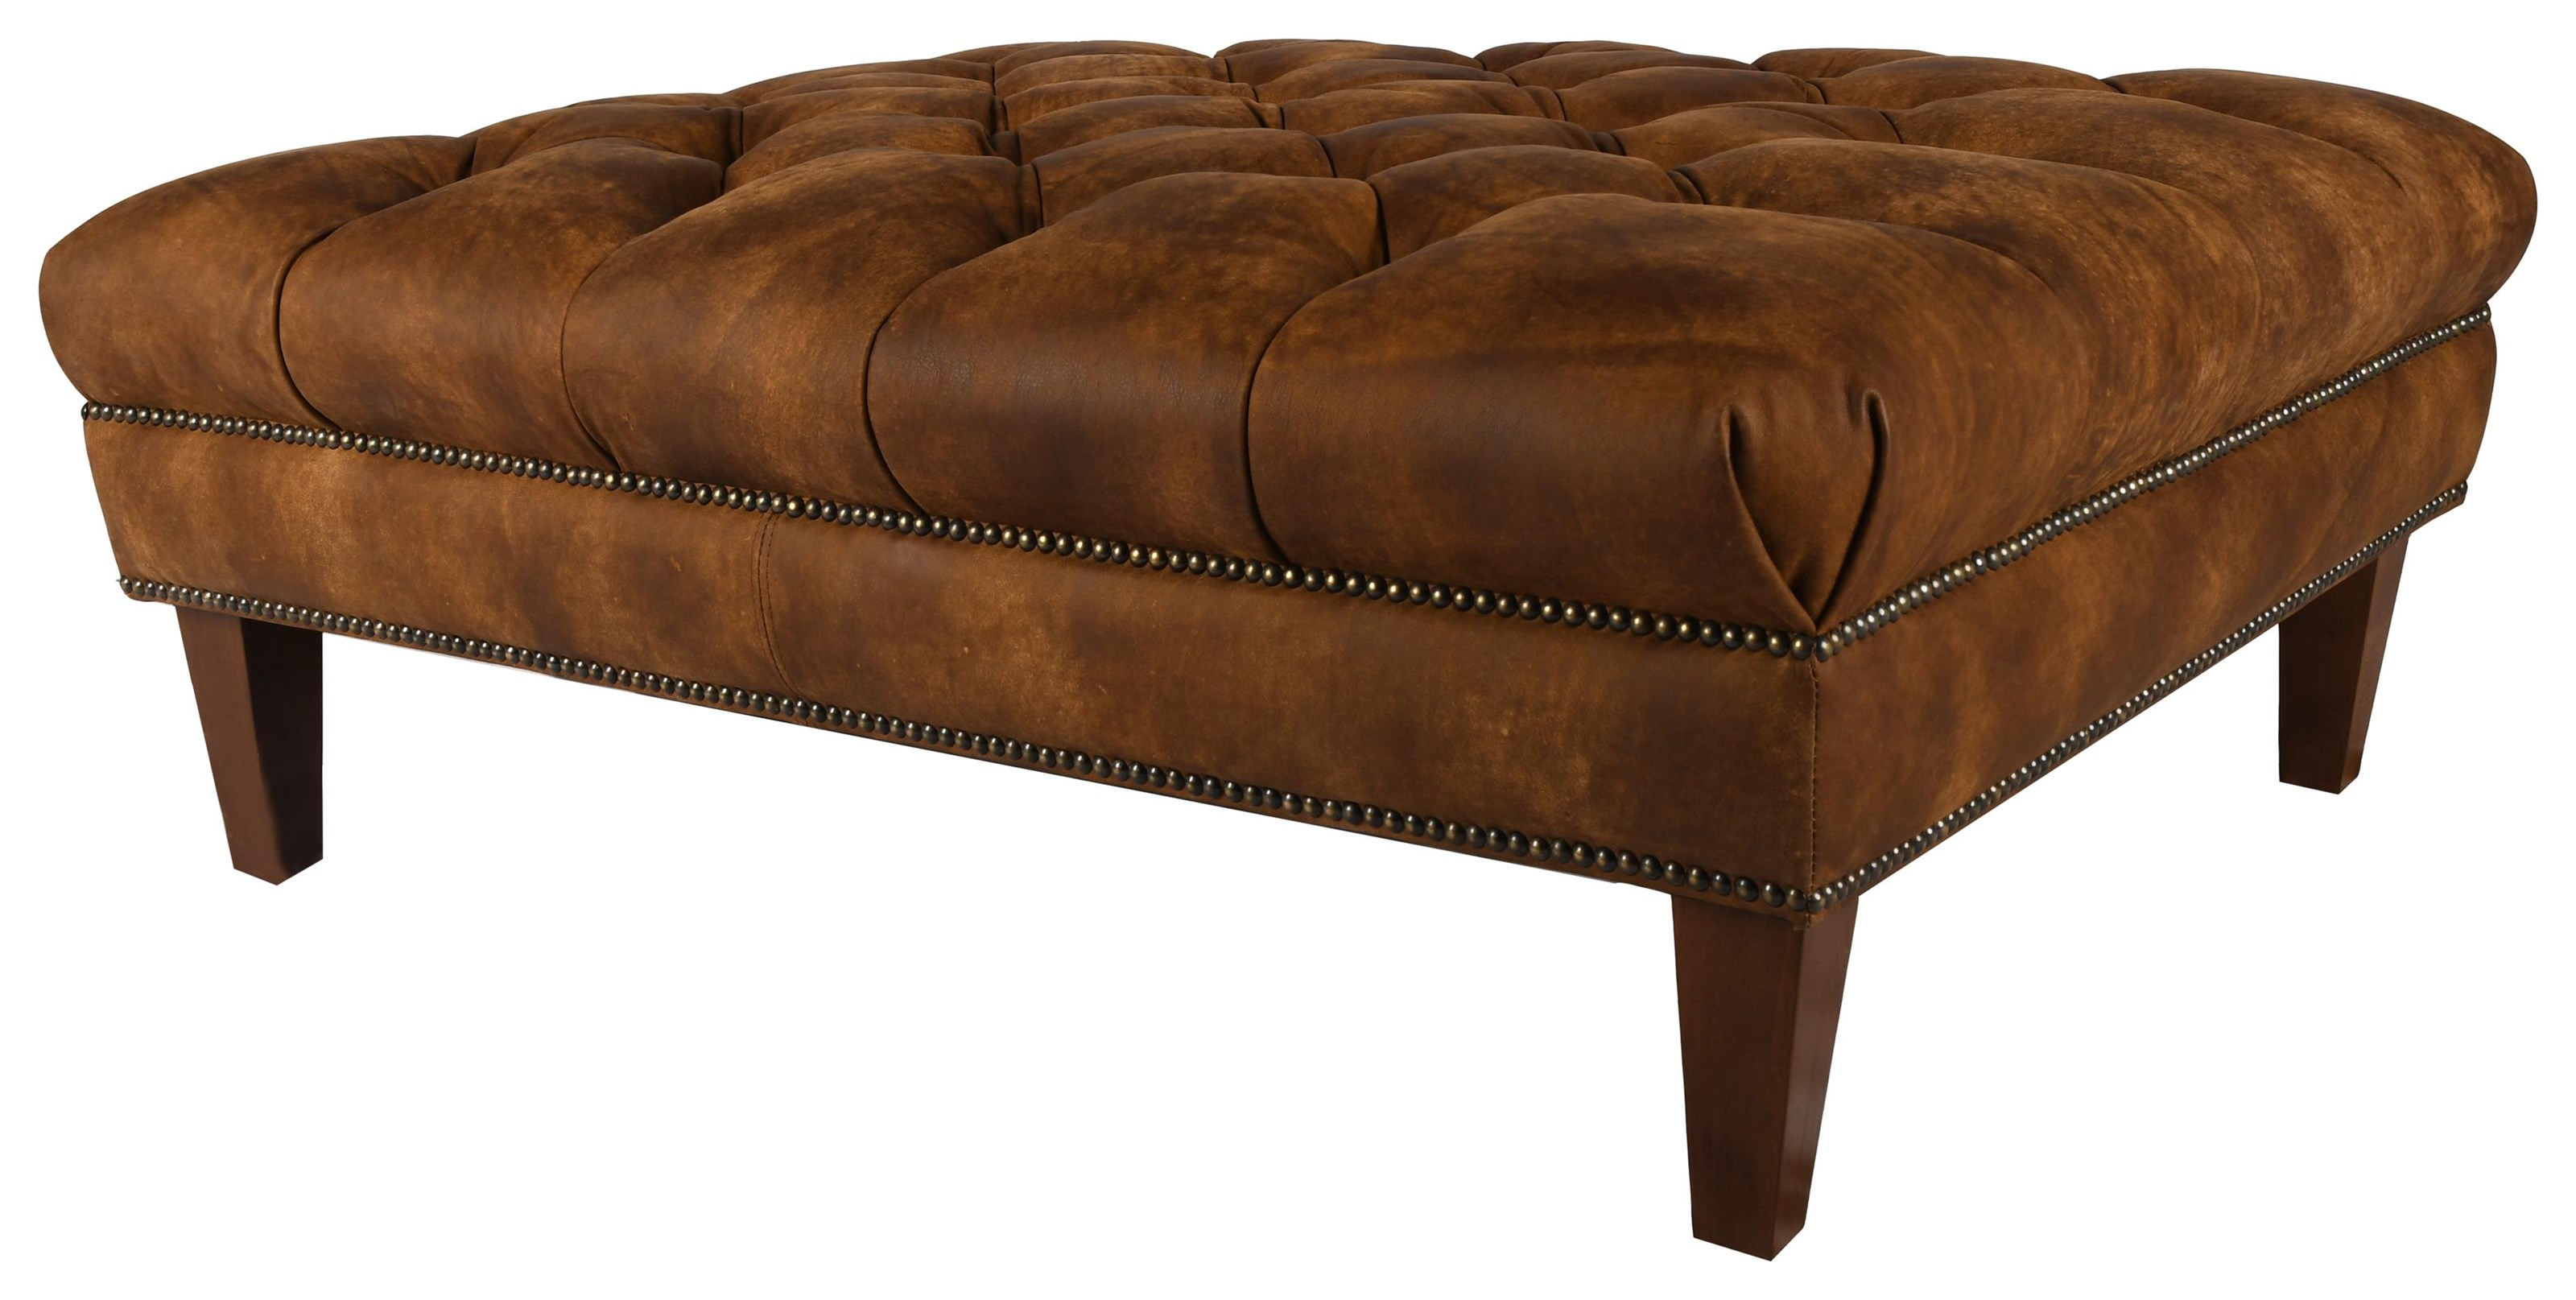 Mia Ottoman by Taelor Designs at Bennett's Furniture and Mattresses